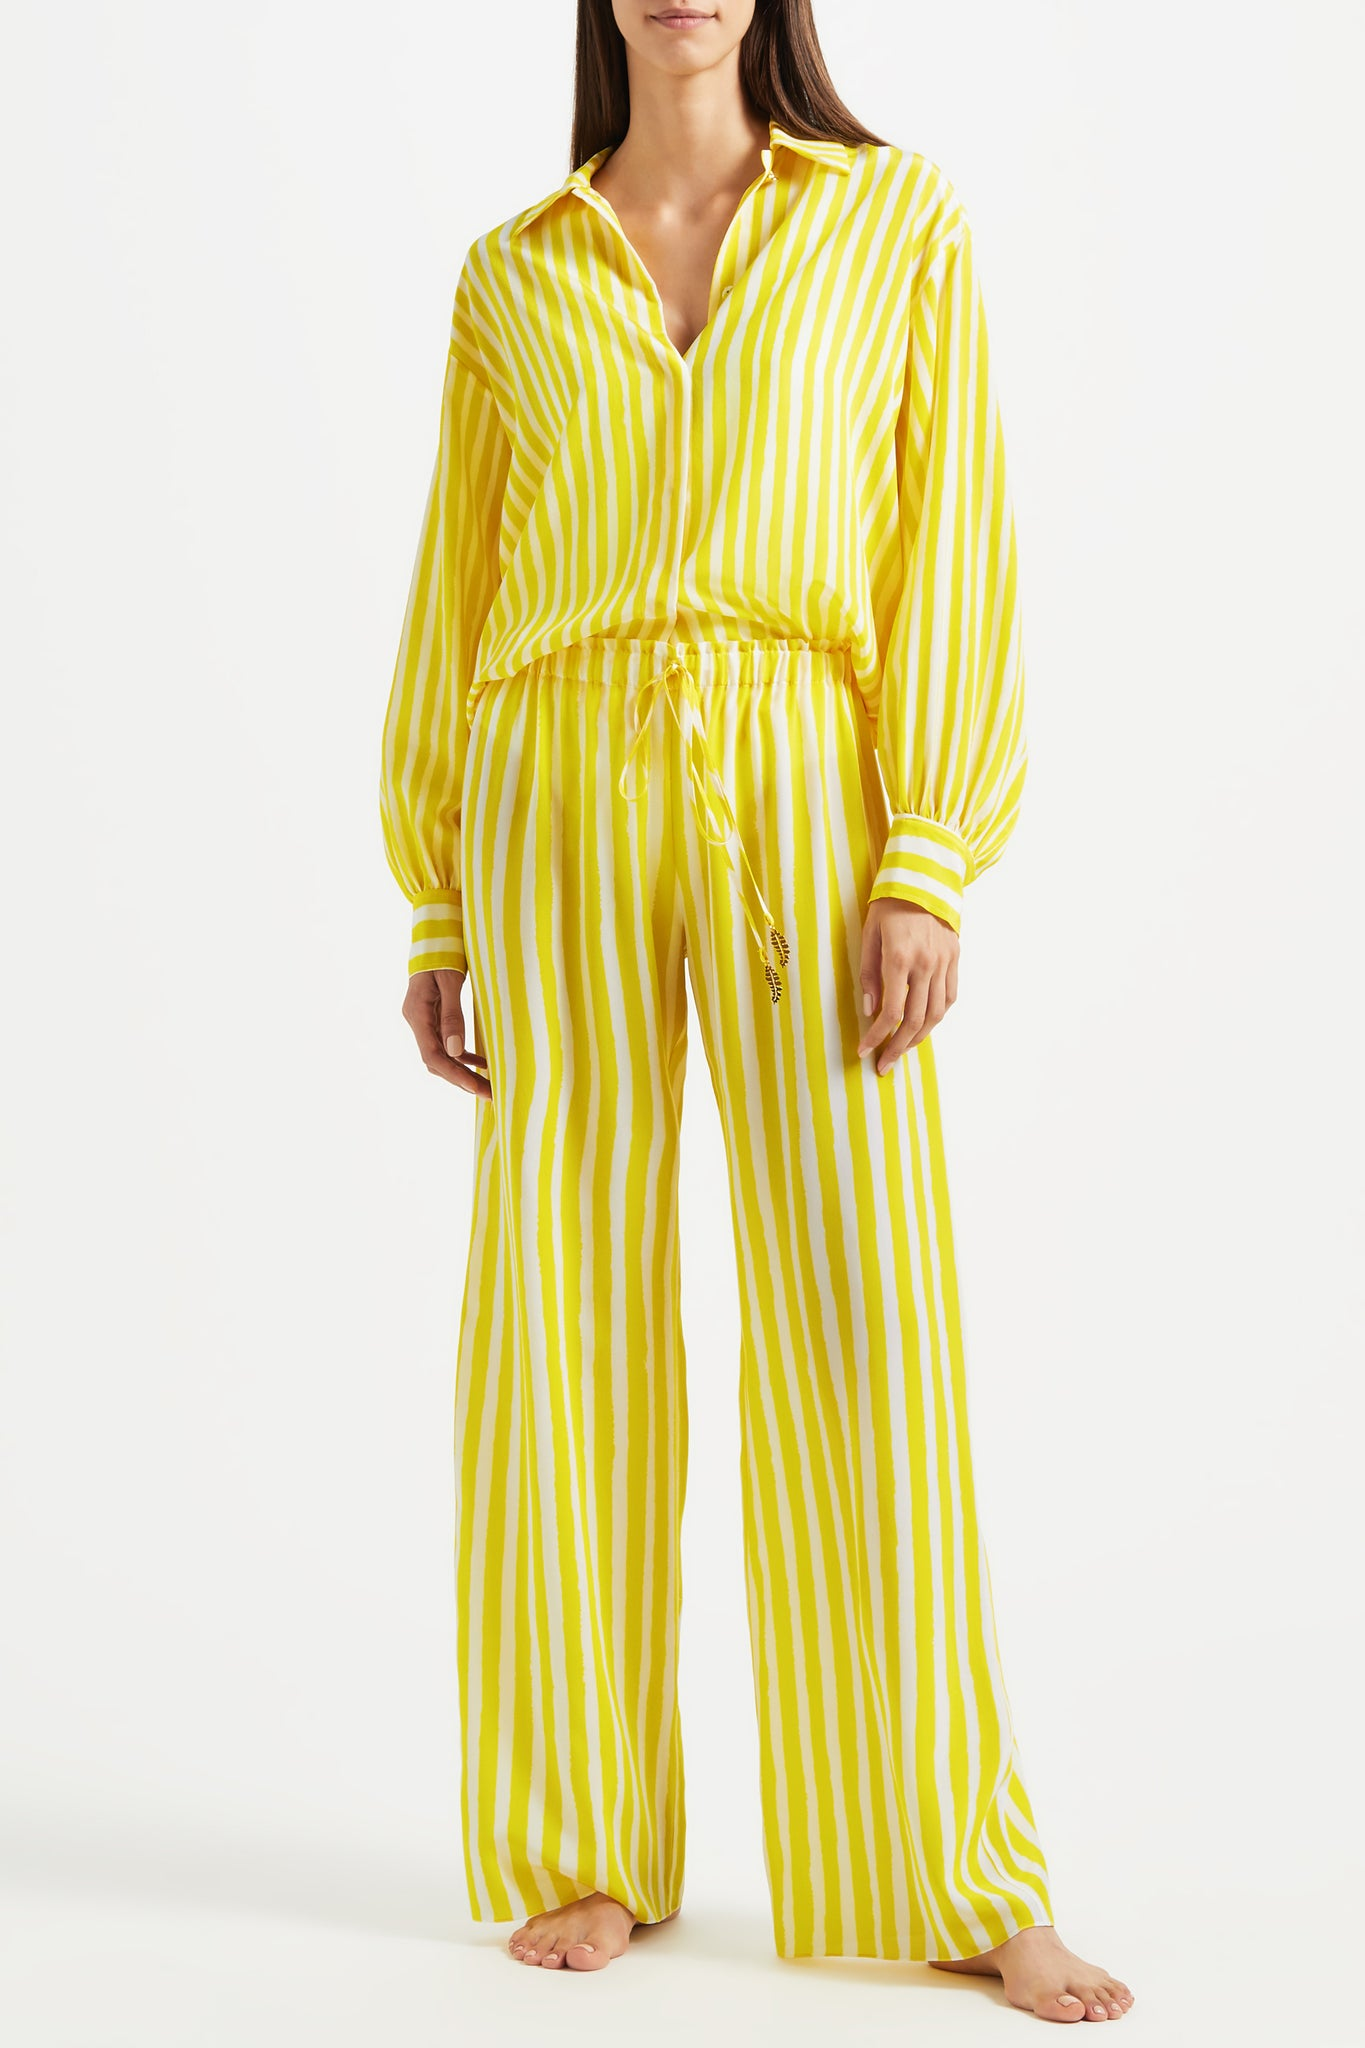 Kalmar Celia Blouse in yellow stripe